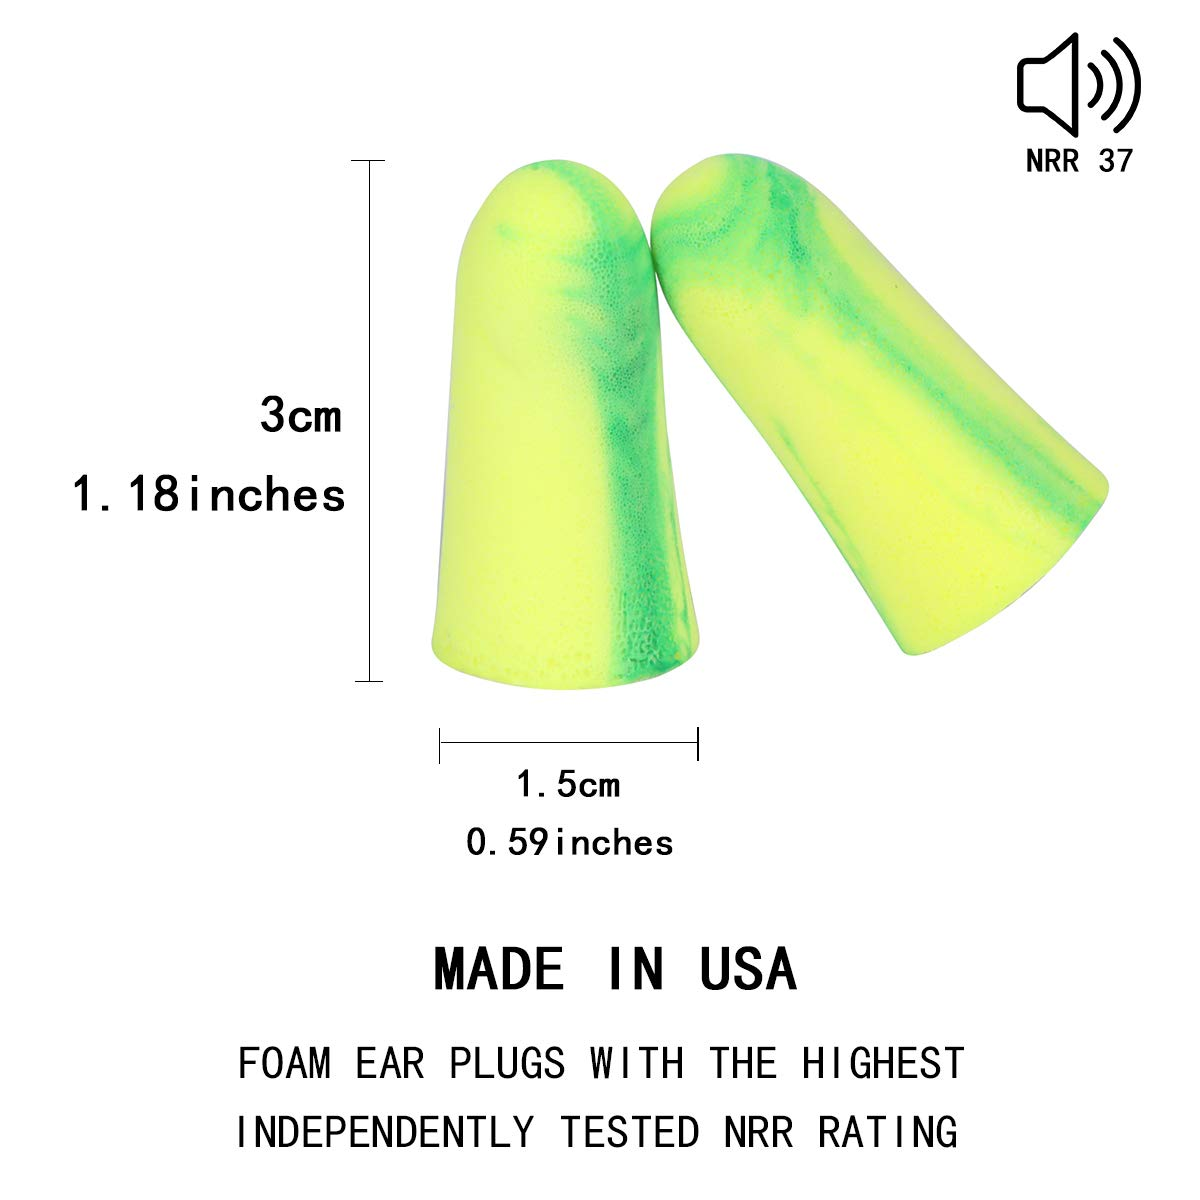 Earplugs Musicians Concerts and Festivals etc Bojly 10 PCS Ear plugs Noise Cancelling max SNR 37db of Sponge High Density Anti Noise for Sleep Students